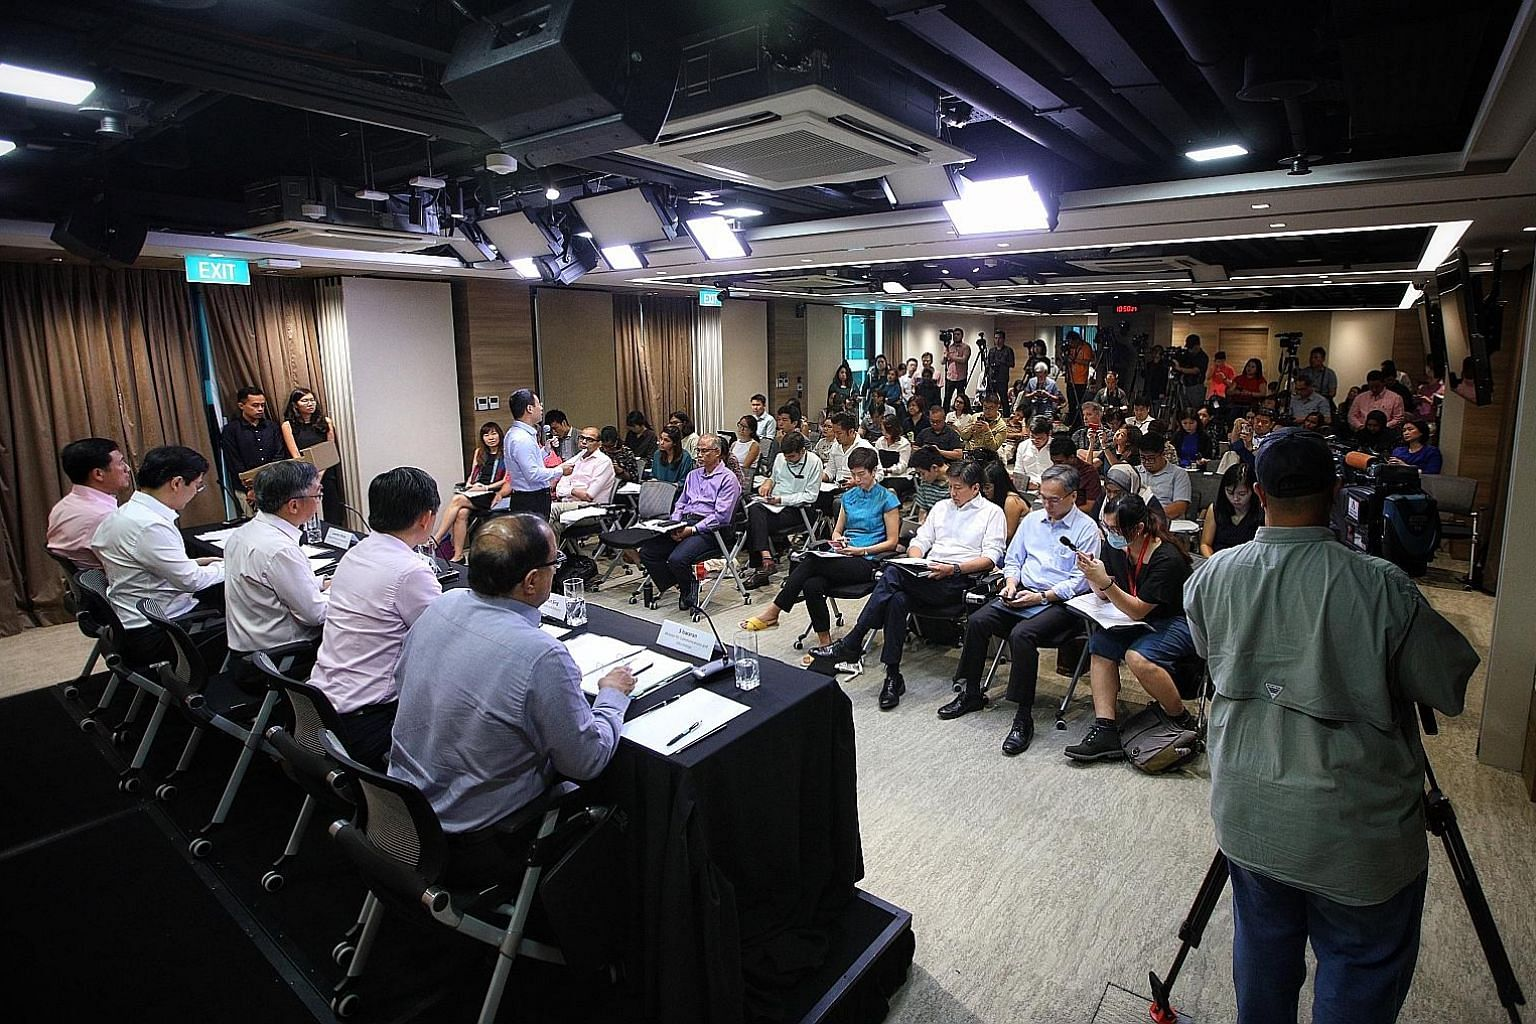 Social and Family Development Minister Desmond Lee (standing) speaking about his ministry's measures at a press conference by the multi-ministry task force on the Wuhan virus yesterday. Seated behind him are (from left) Education Minister Ong Ye Kung